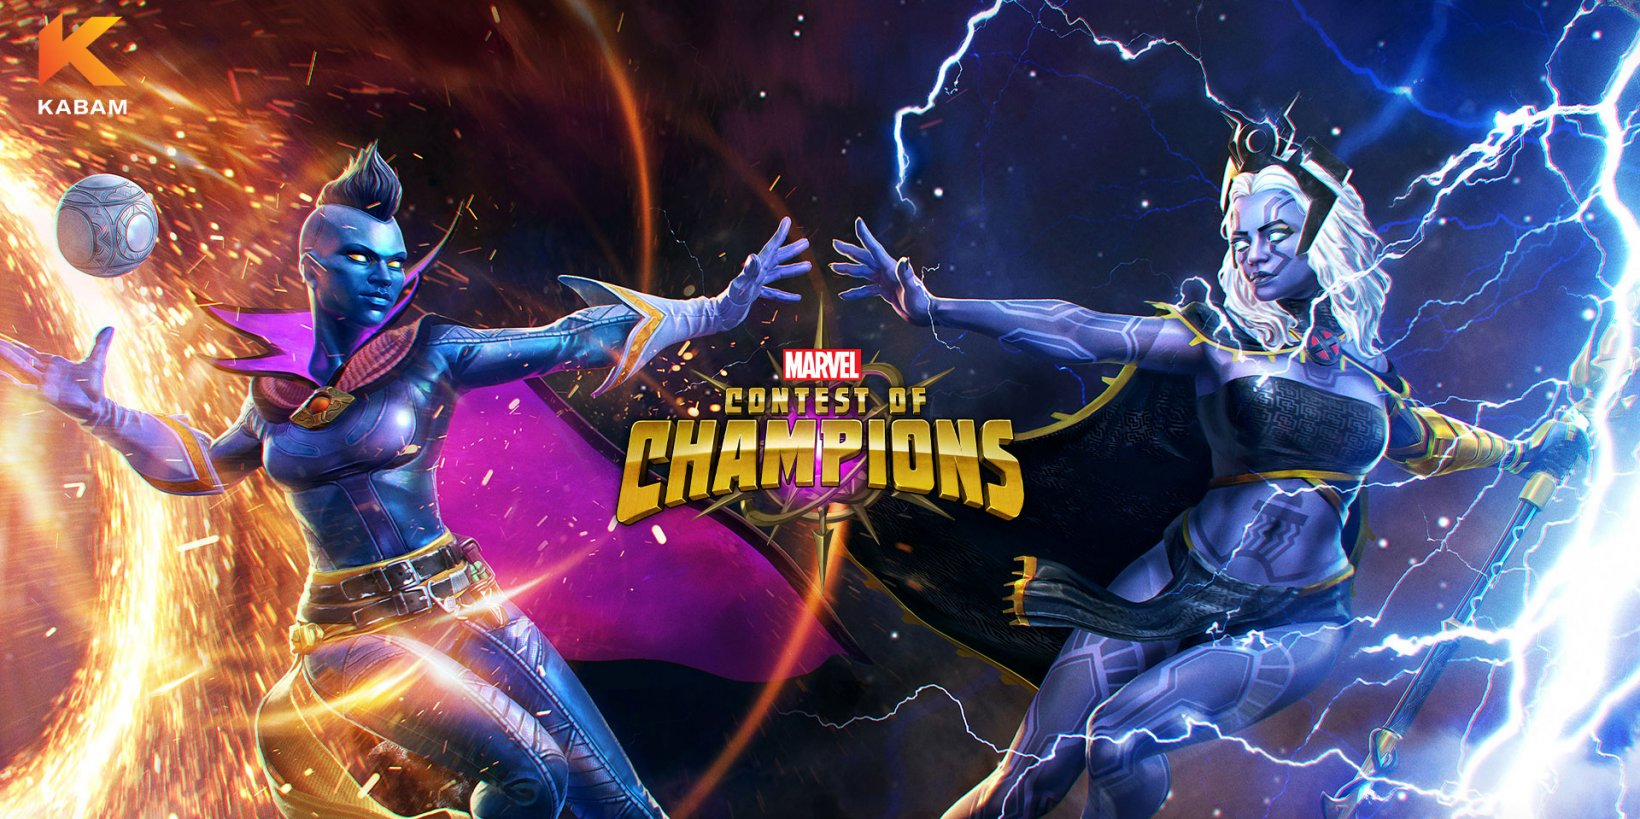 Marvel Contest of Champions introduces a Pyramid X variant of Storm in its latest update